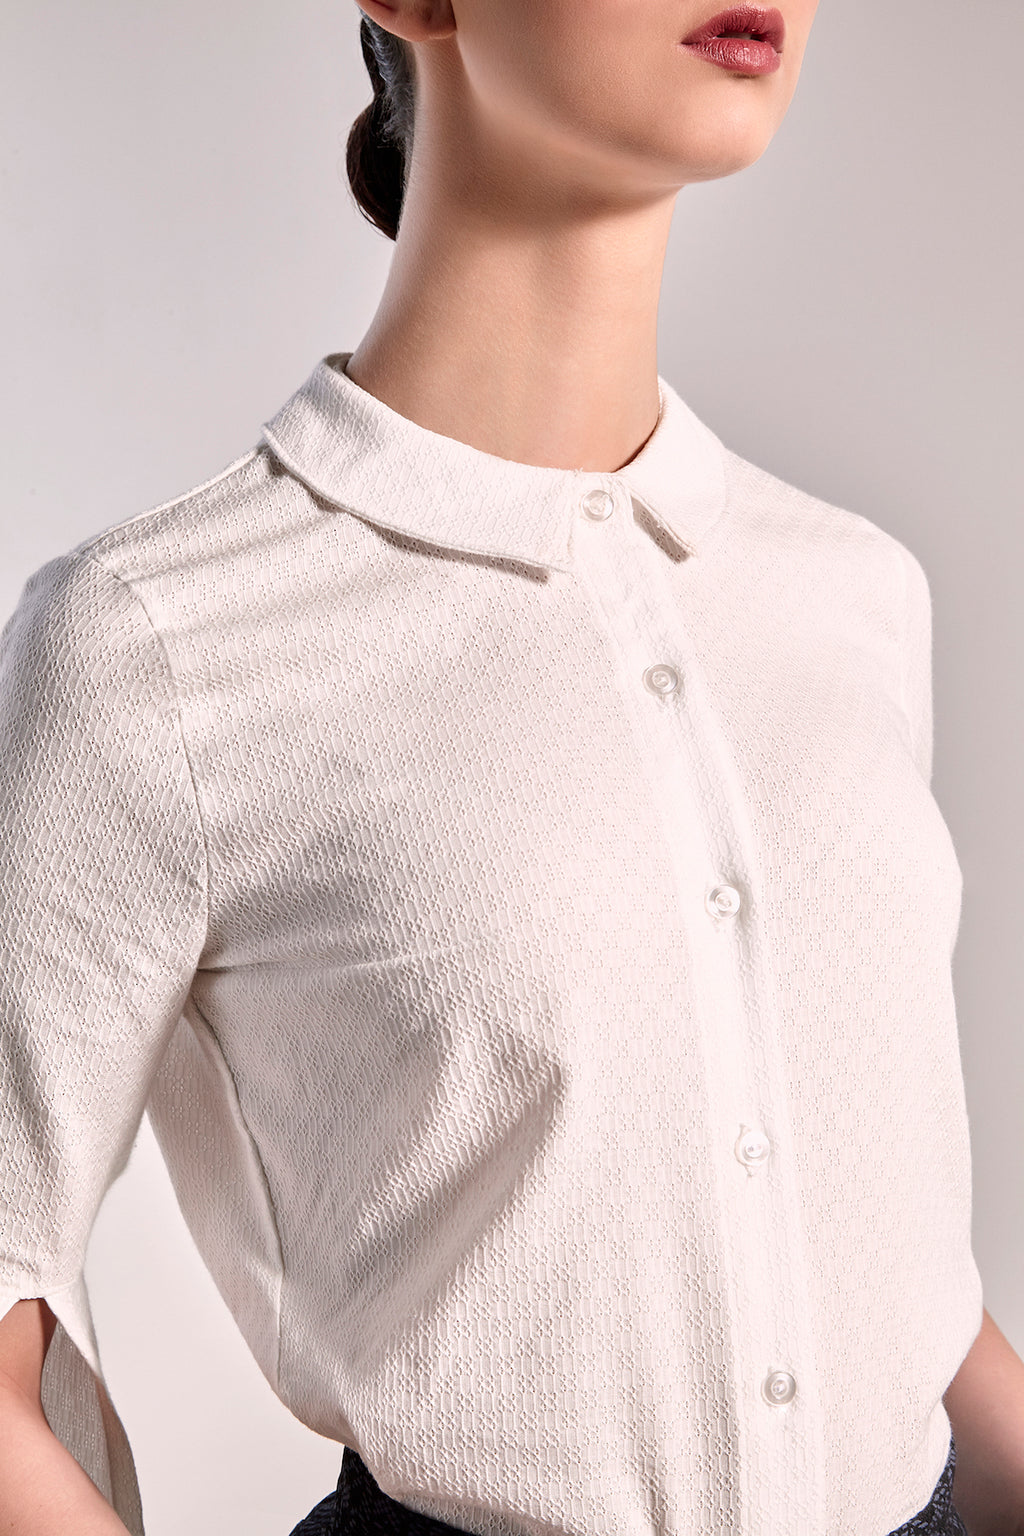 White Bergen Shirt Shirts The Fashion Advocate ethical Australian fashion designer boutique Melbourne sustainable clothes